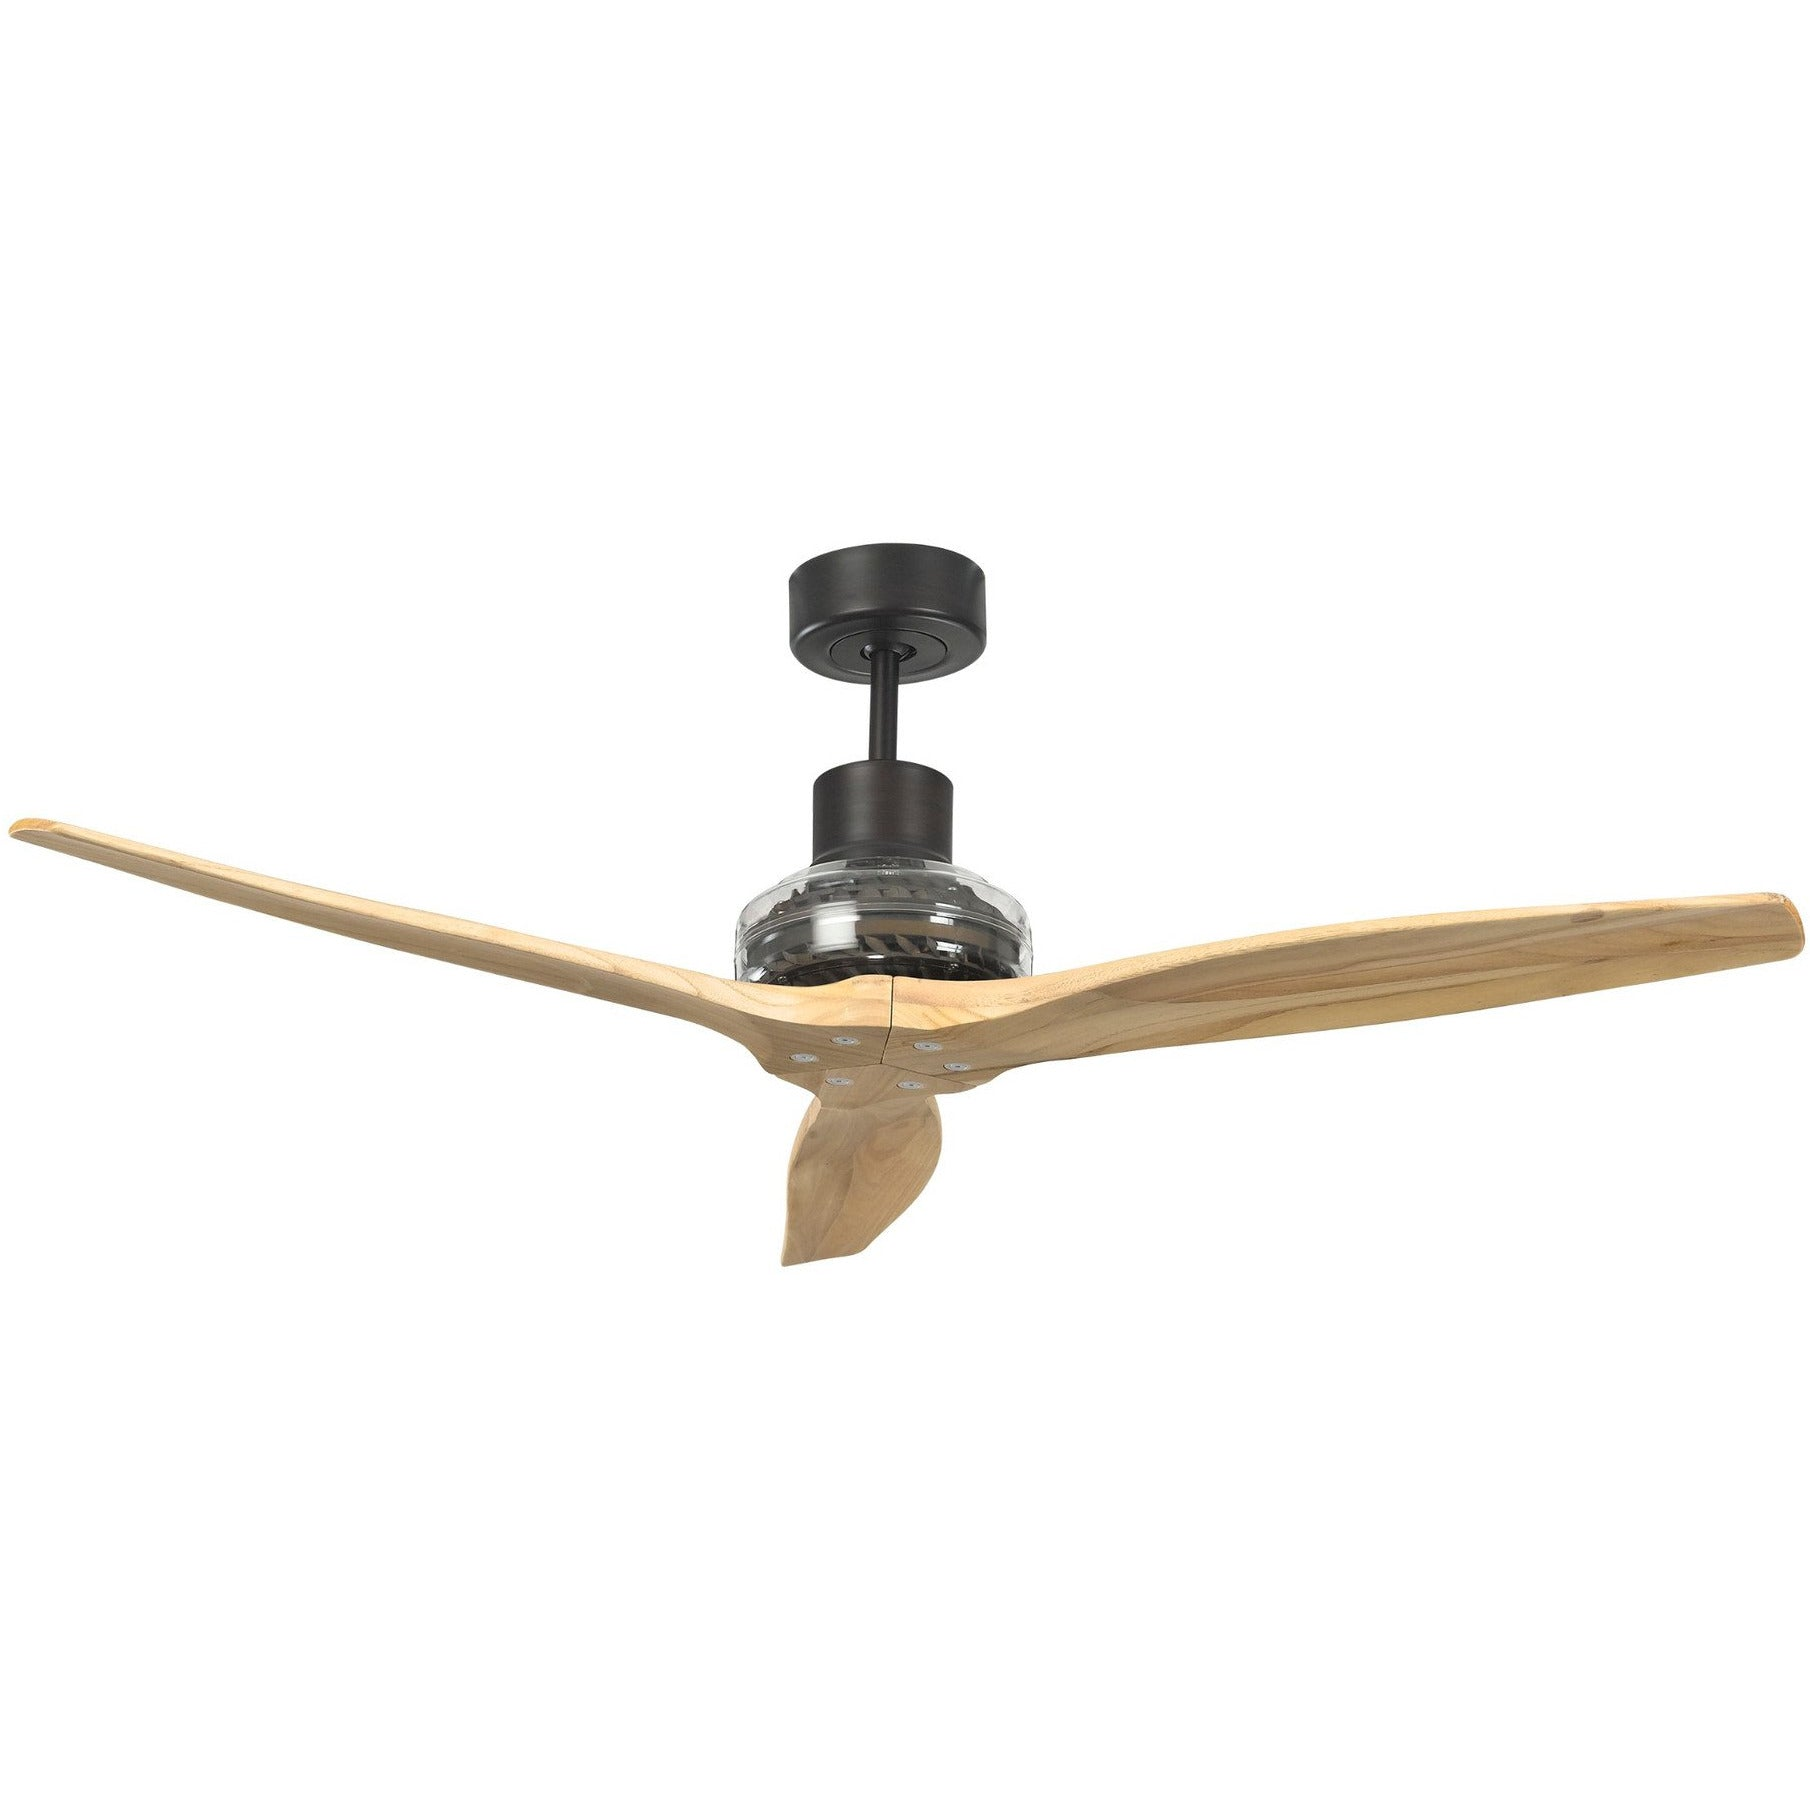 Design your ceiling fan venge star propeller ceiling fan motor aloadofball